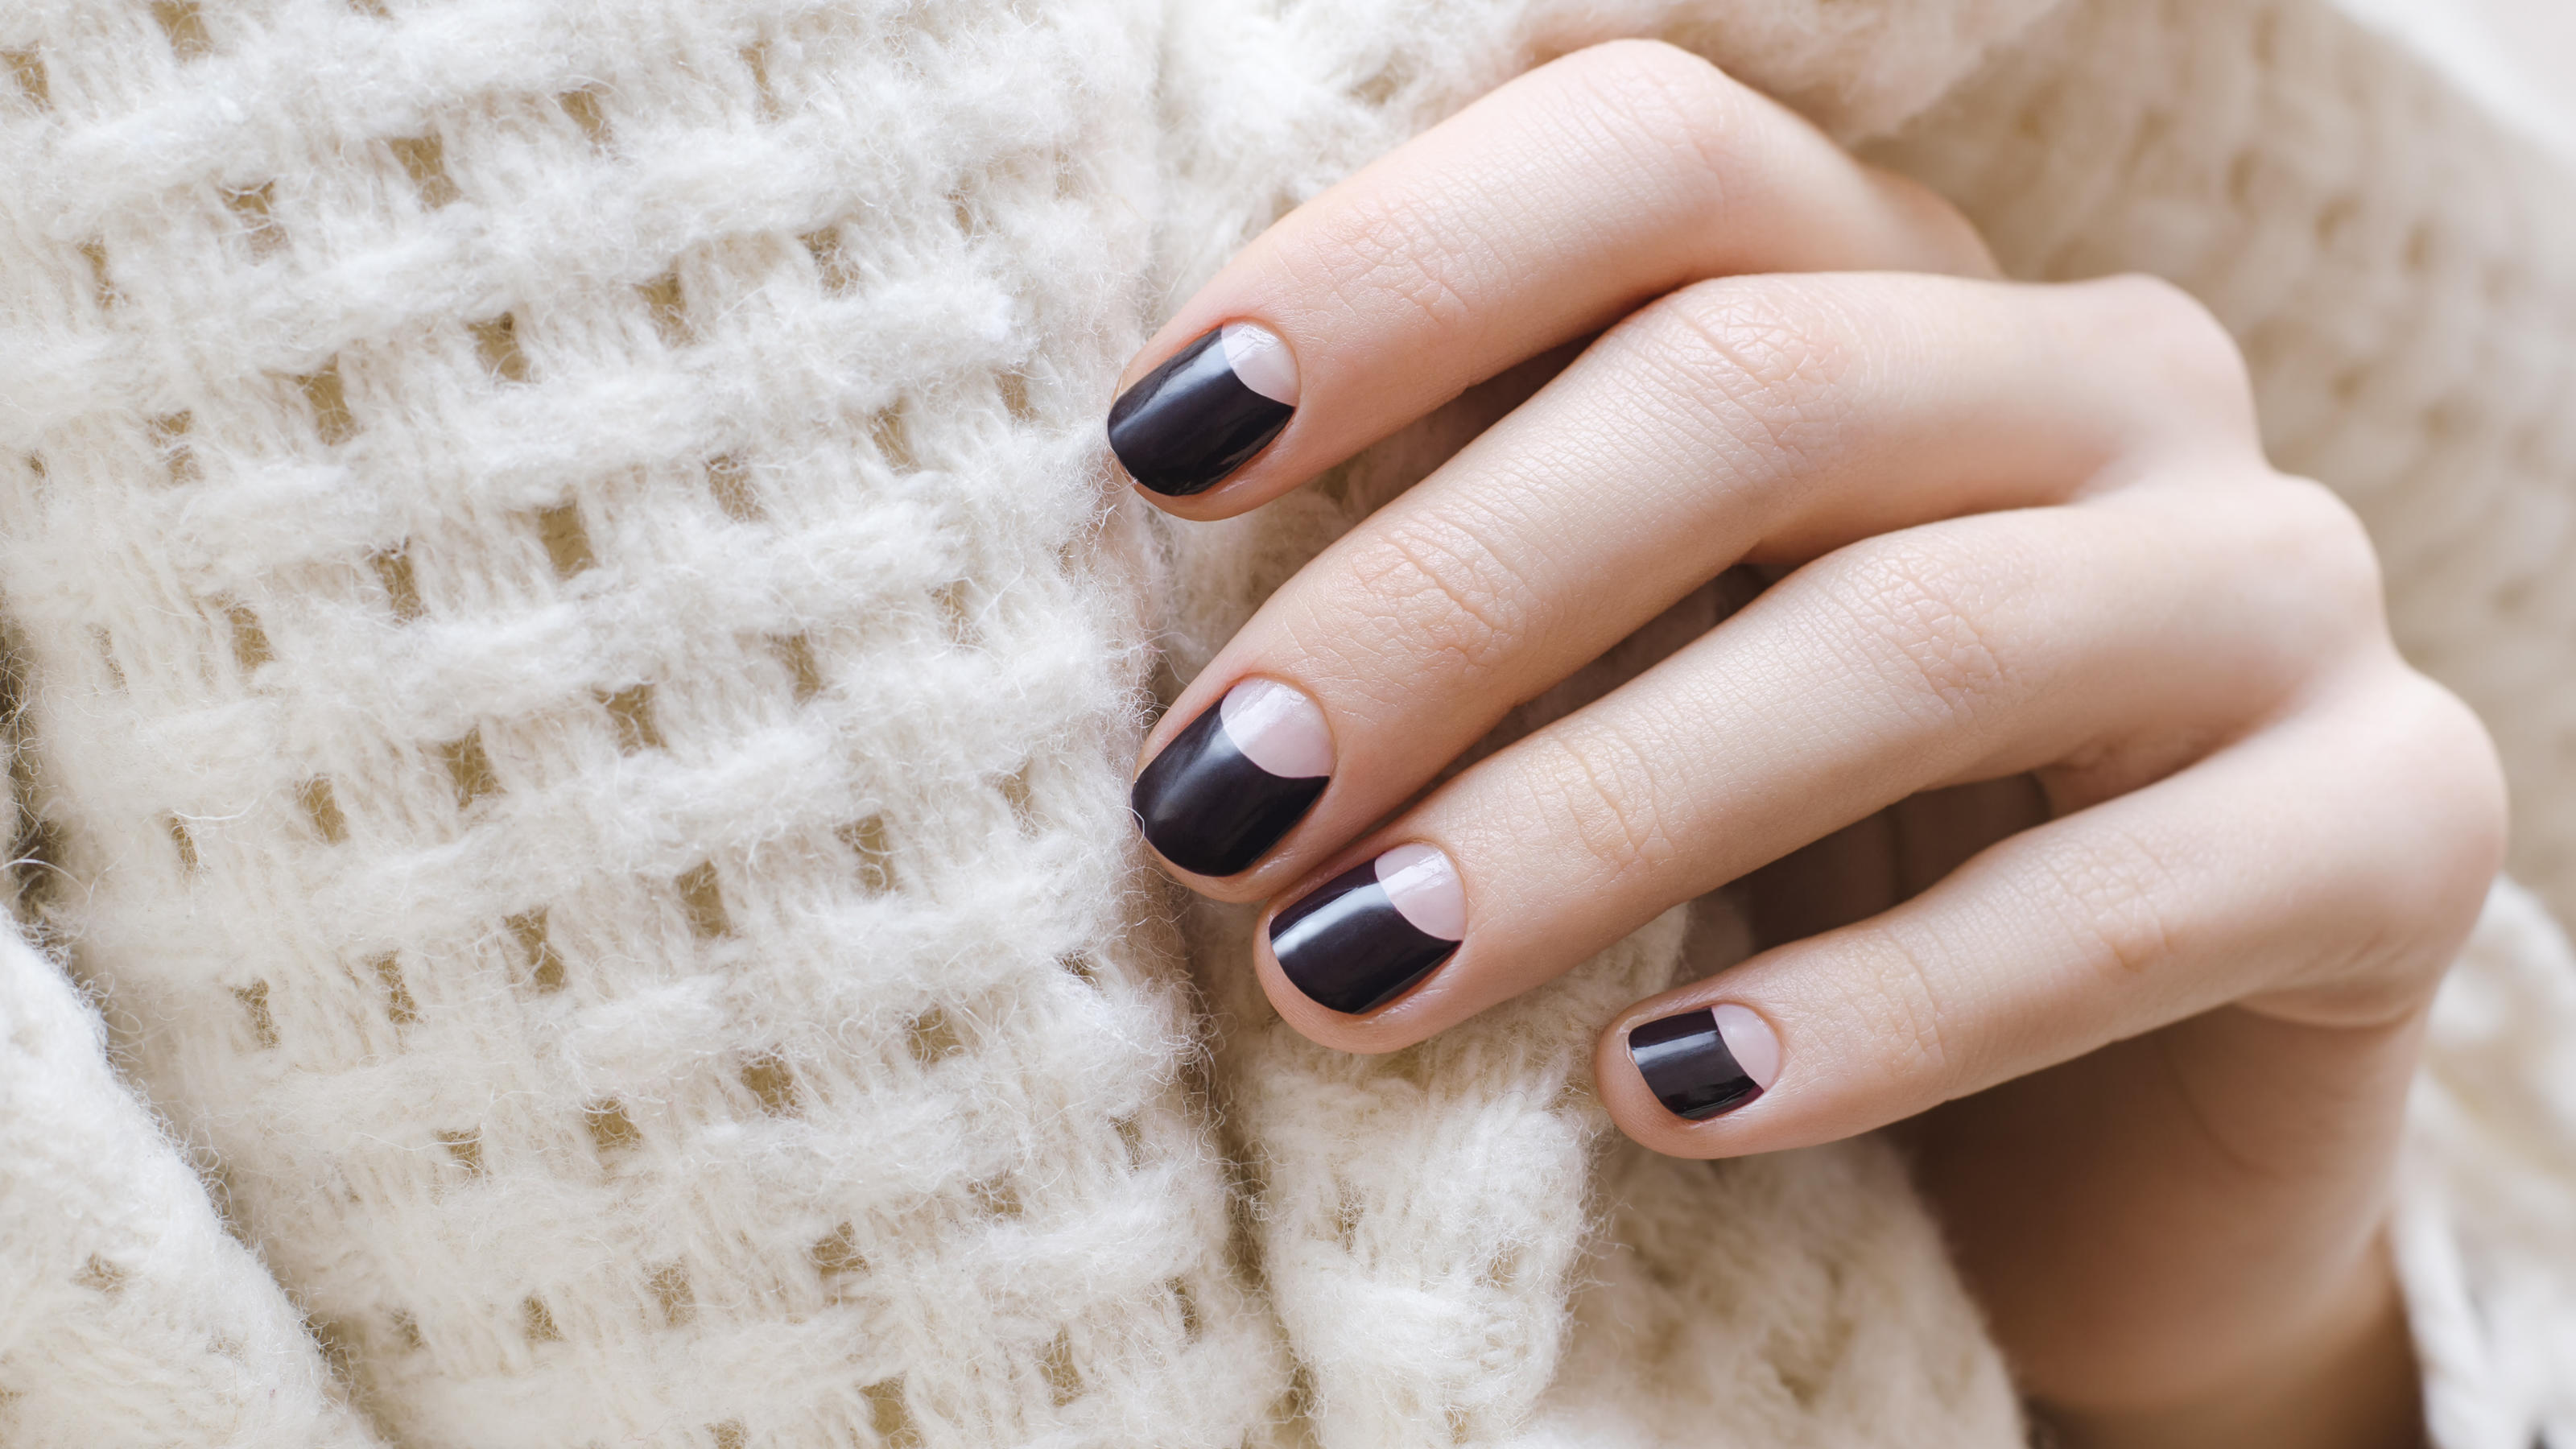 negative space nails so geht das neue trend nagel design - Schone Nagel Muster